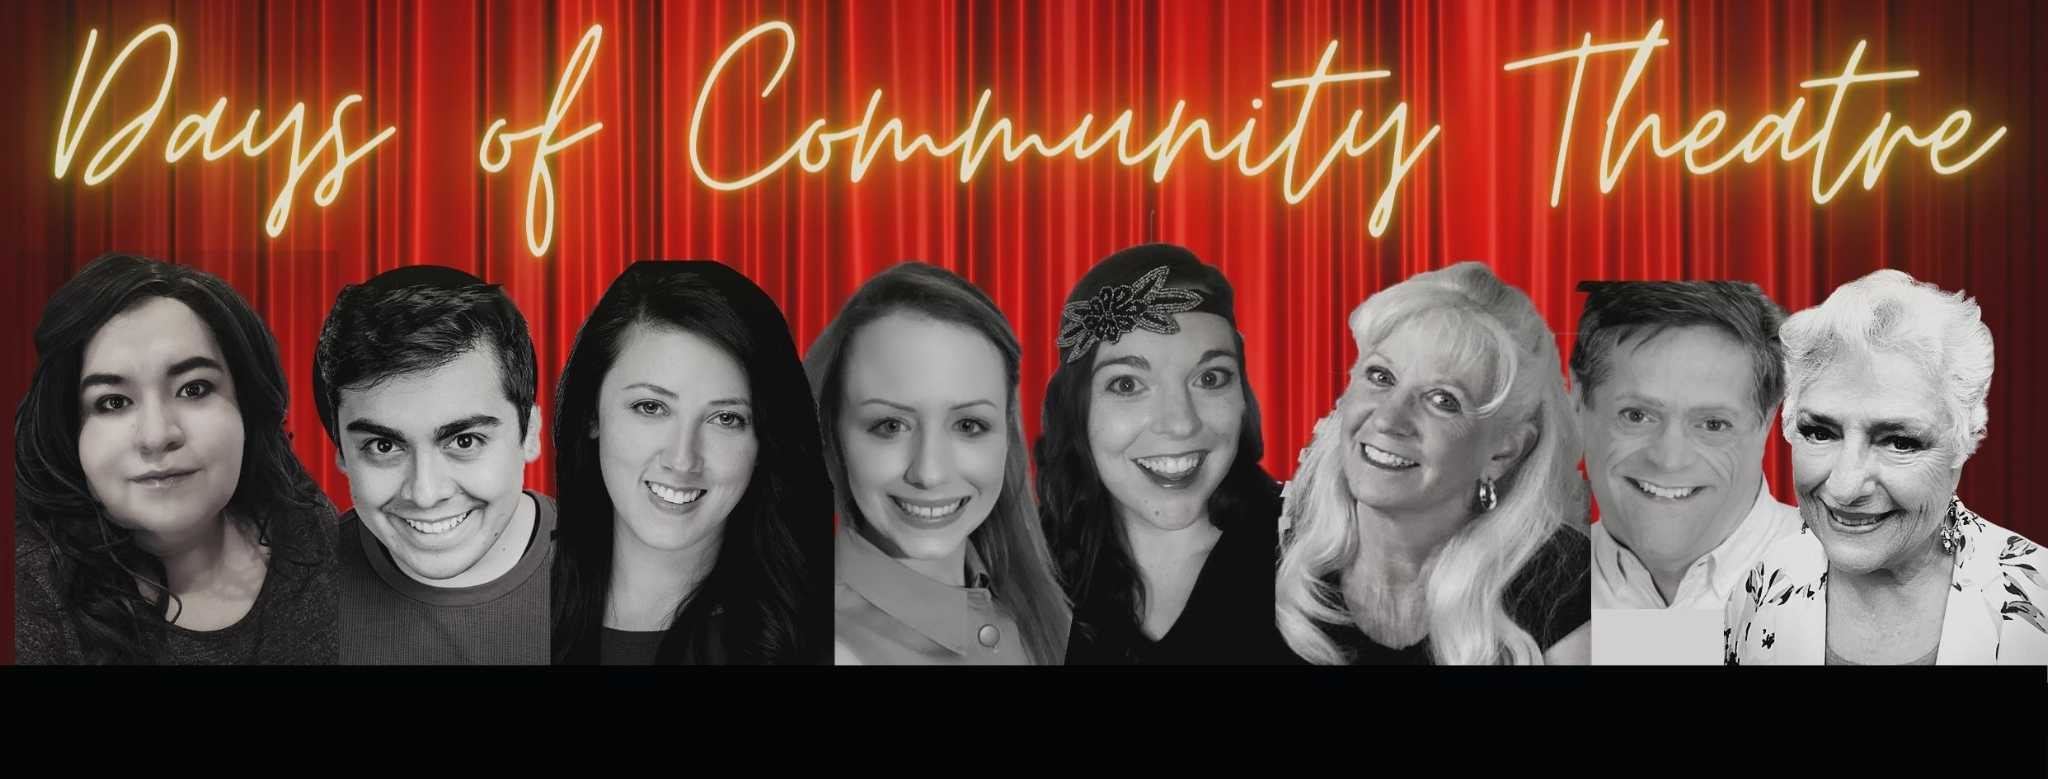 Community theater presents soapy romp in online weekly webisodes